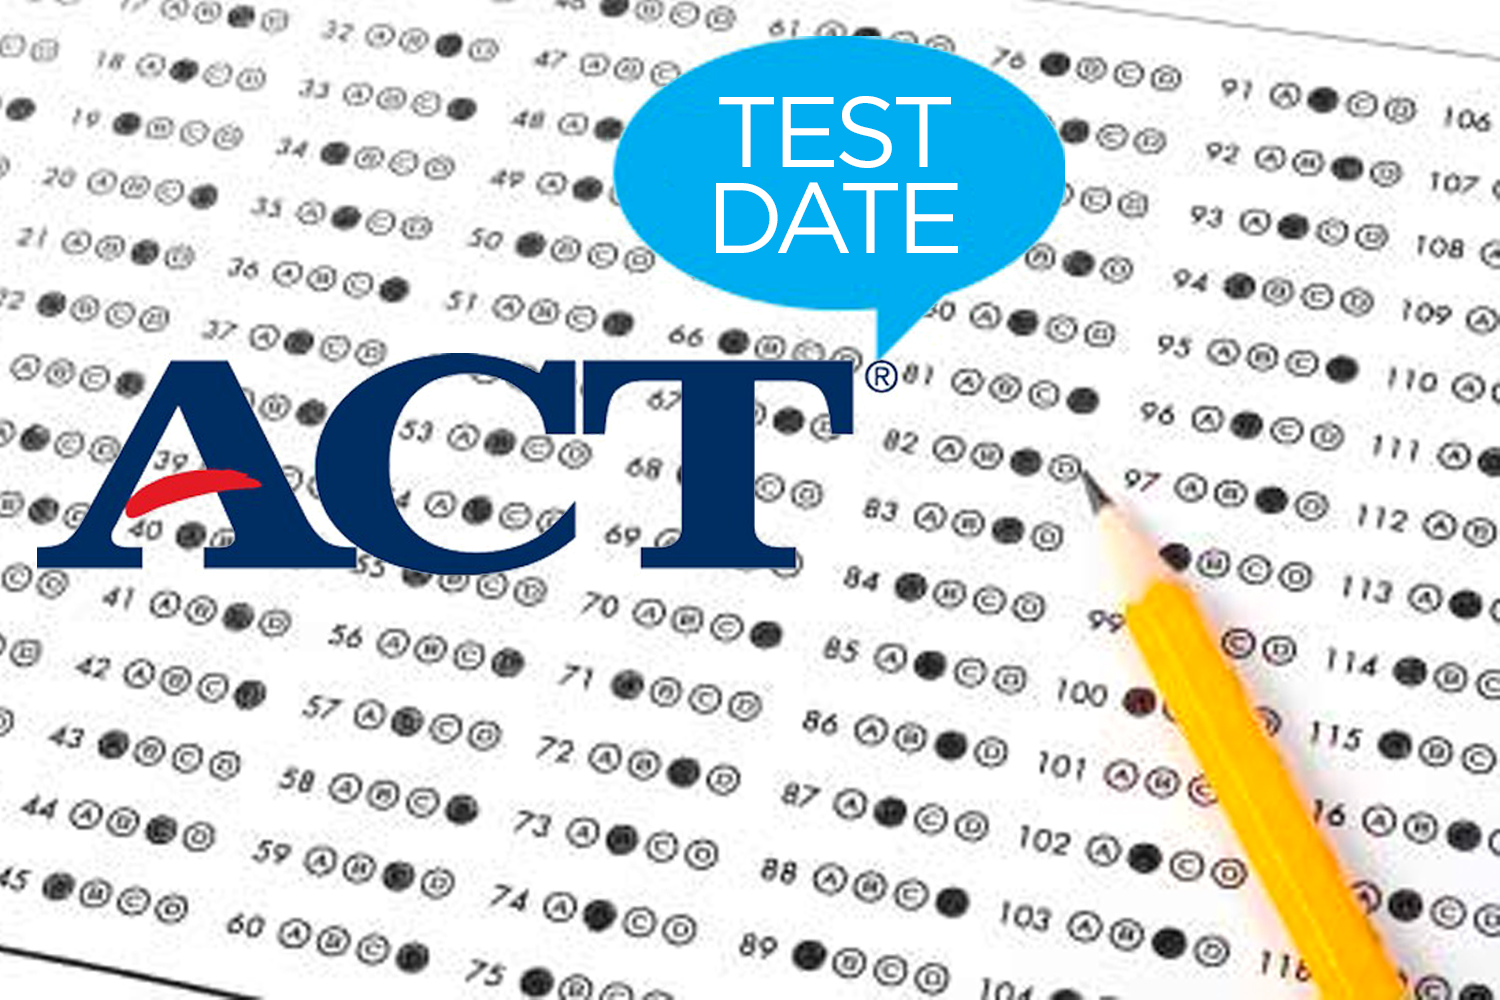 Act Test Date Sep 08